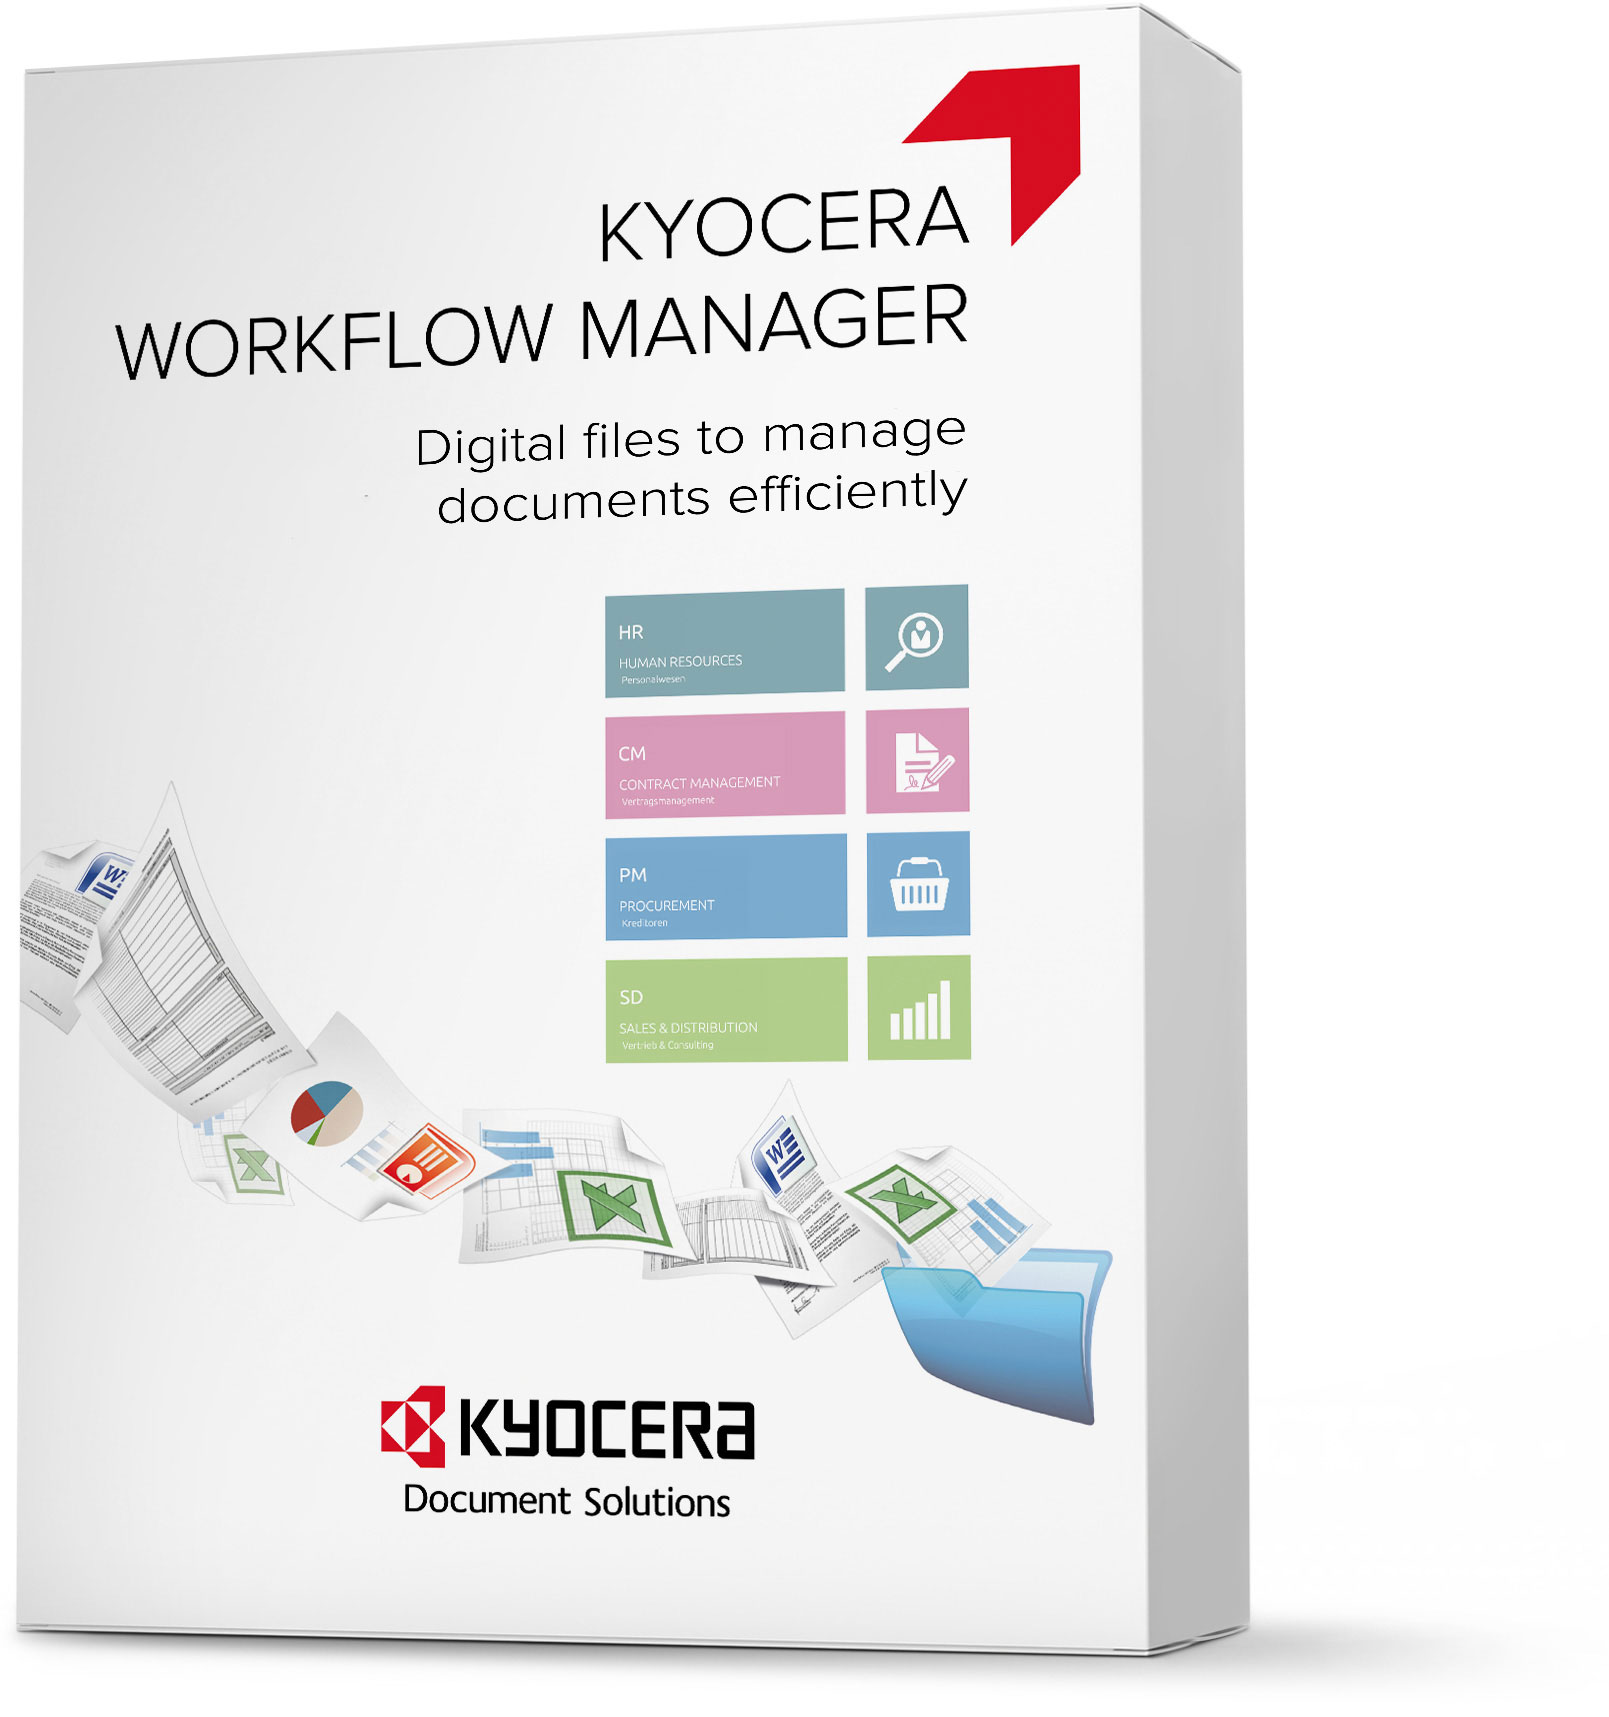 KYOCERA | Workflow Manager